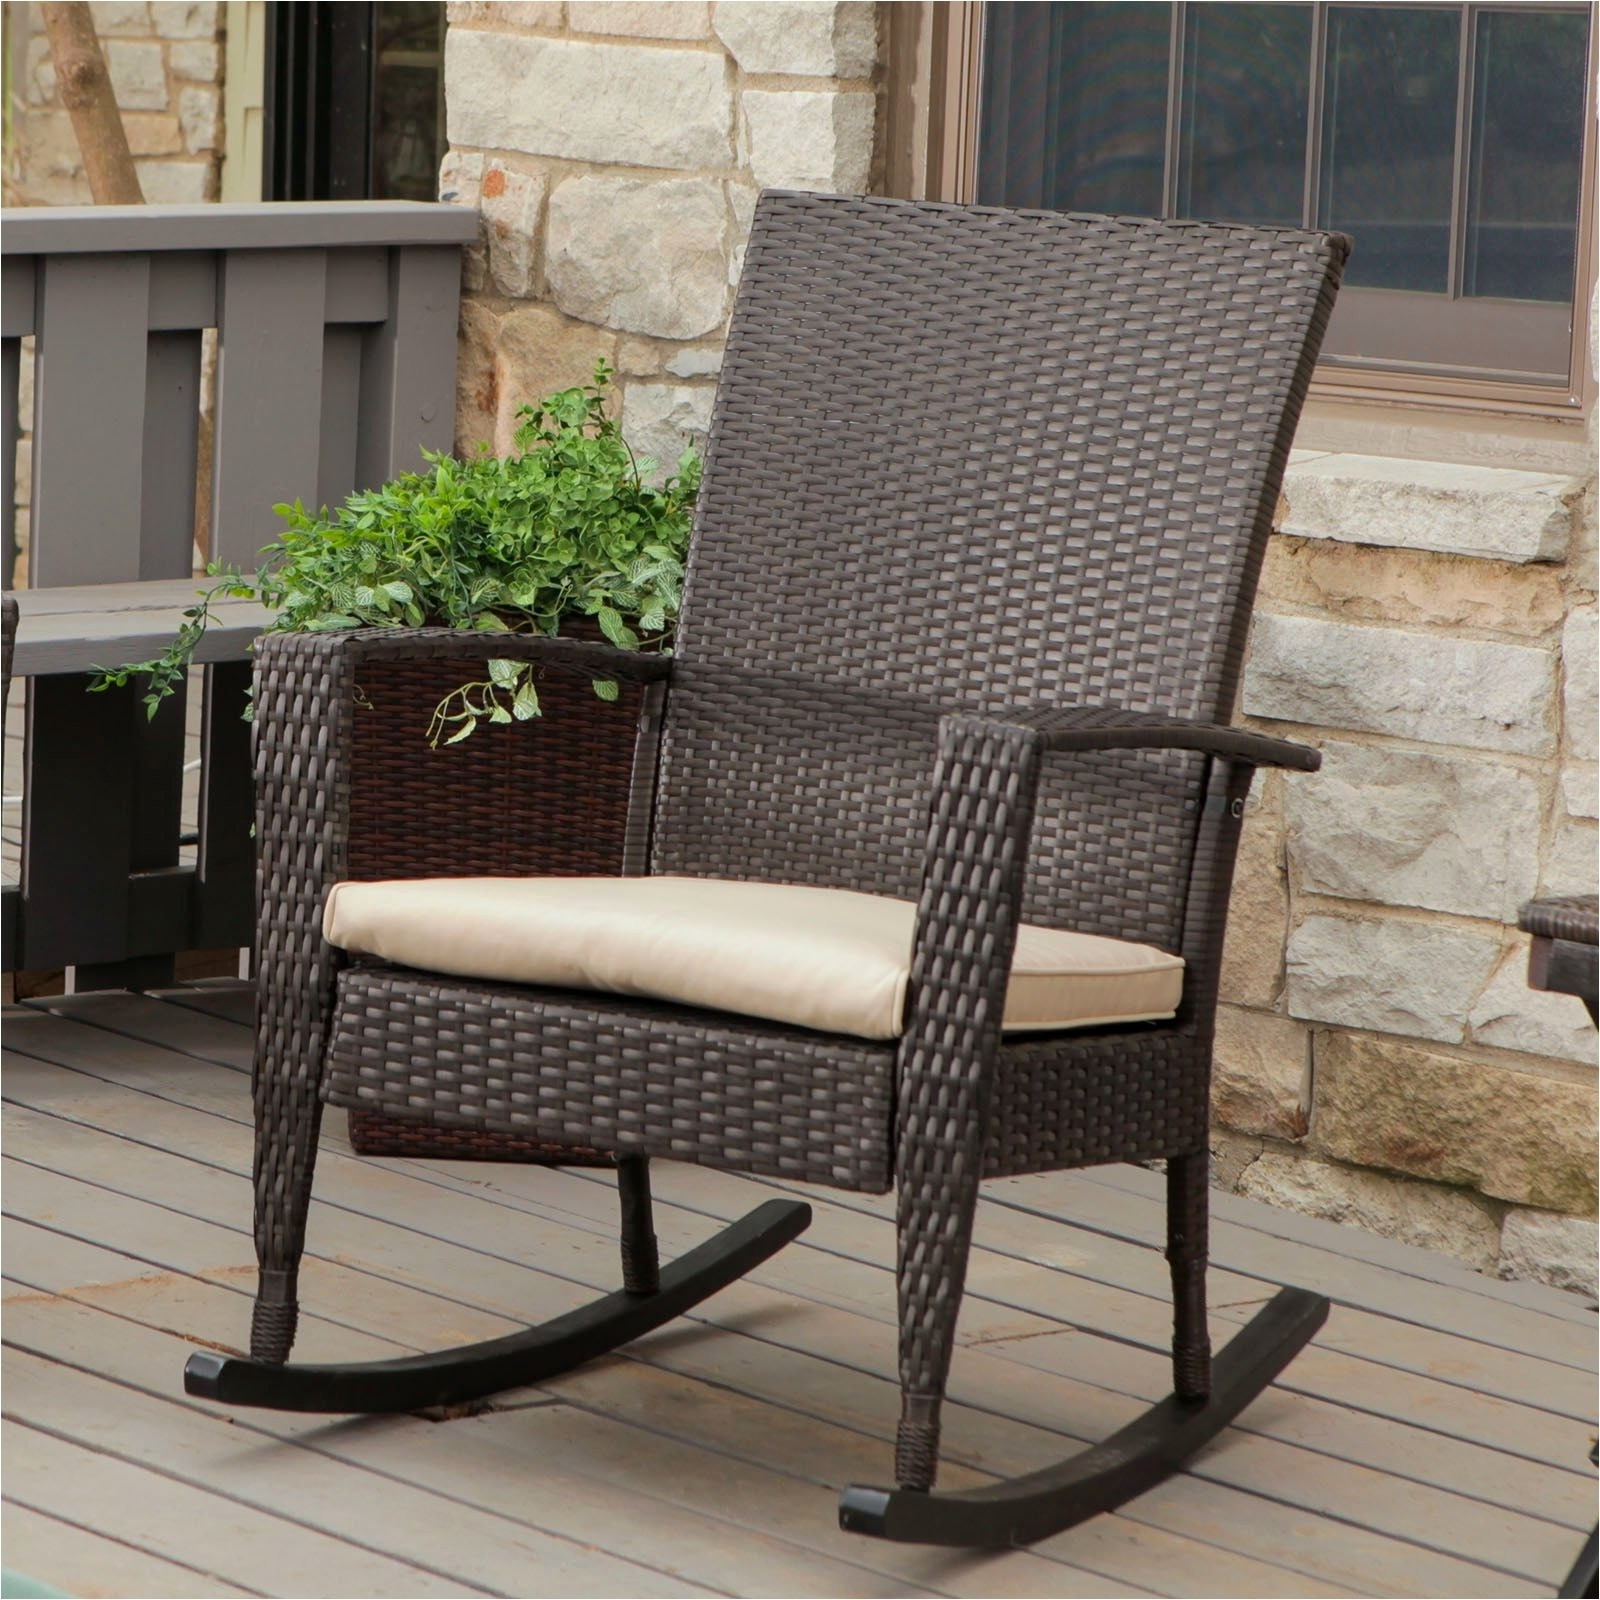 Most Up To Date Patio Rocking Chairs Sets In Patio : Furniture Wicker Dining Set Outside Patio White Outdoor (View 12 of 15)